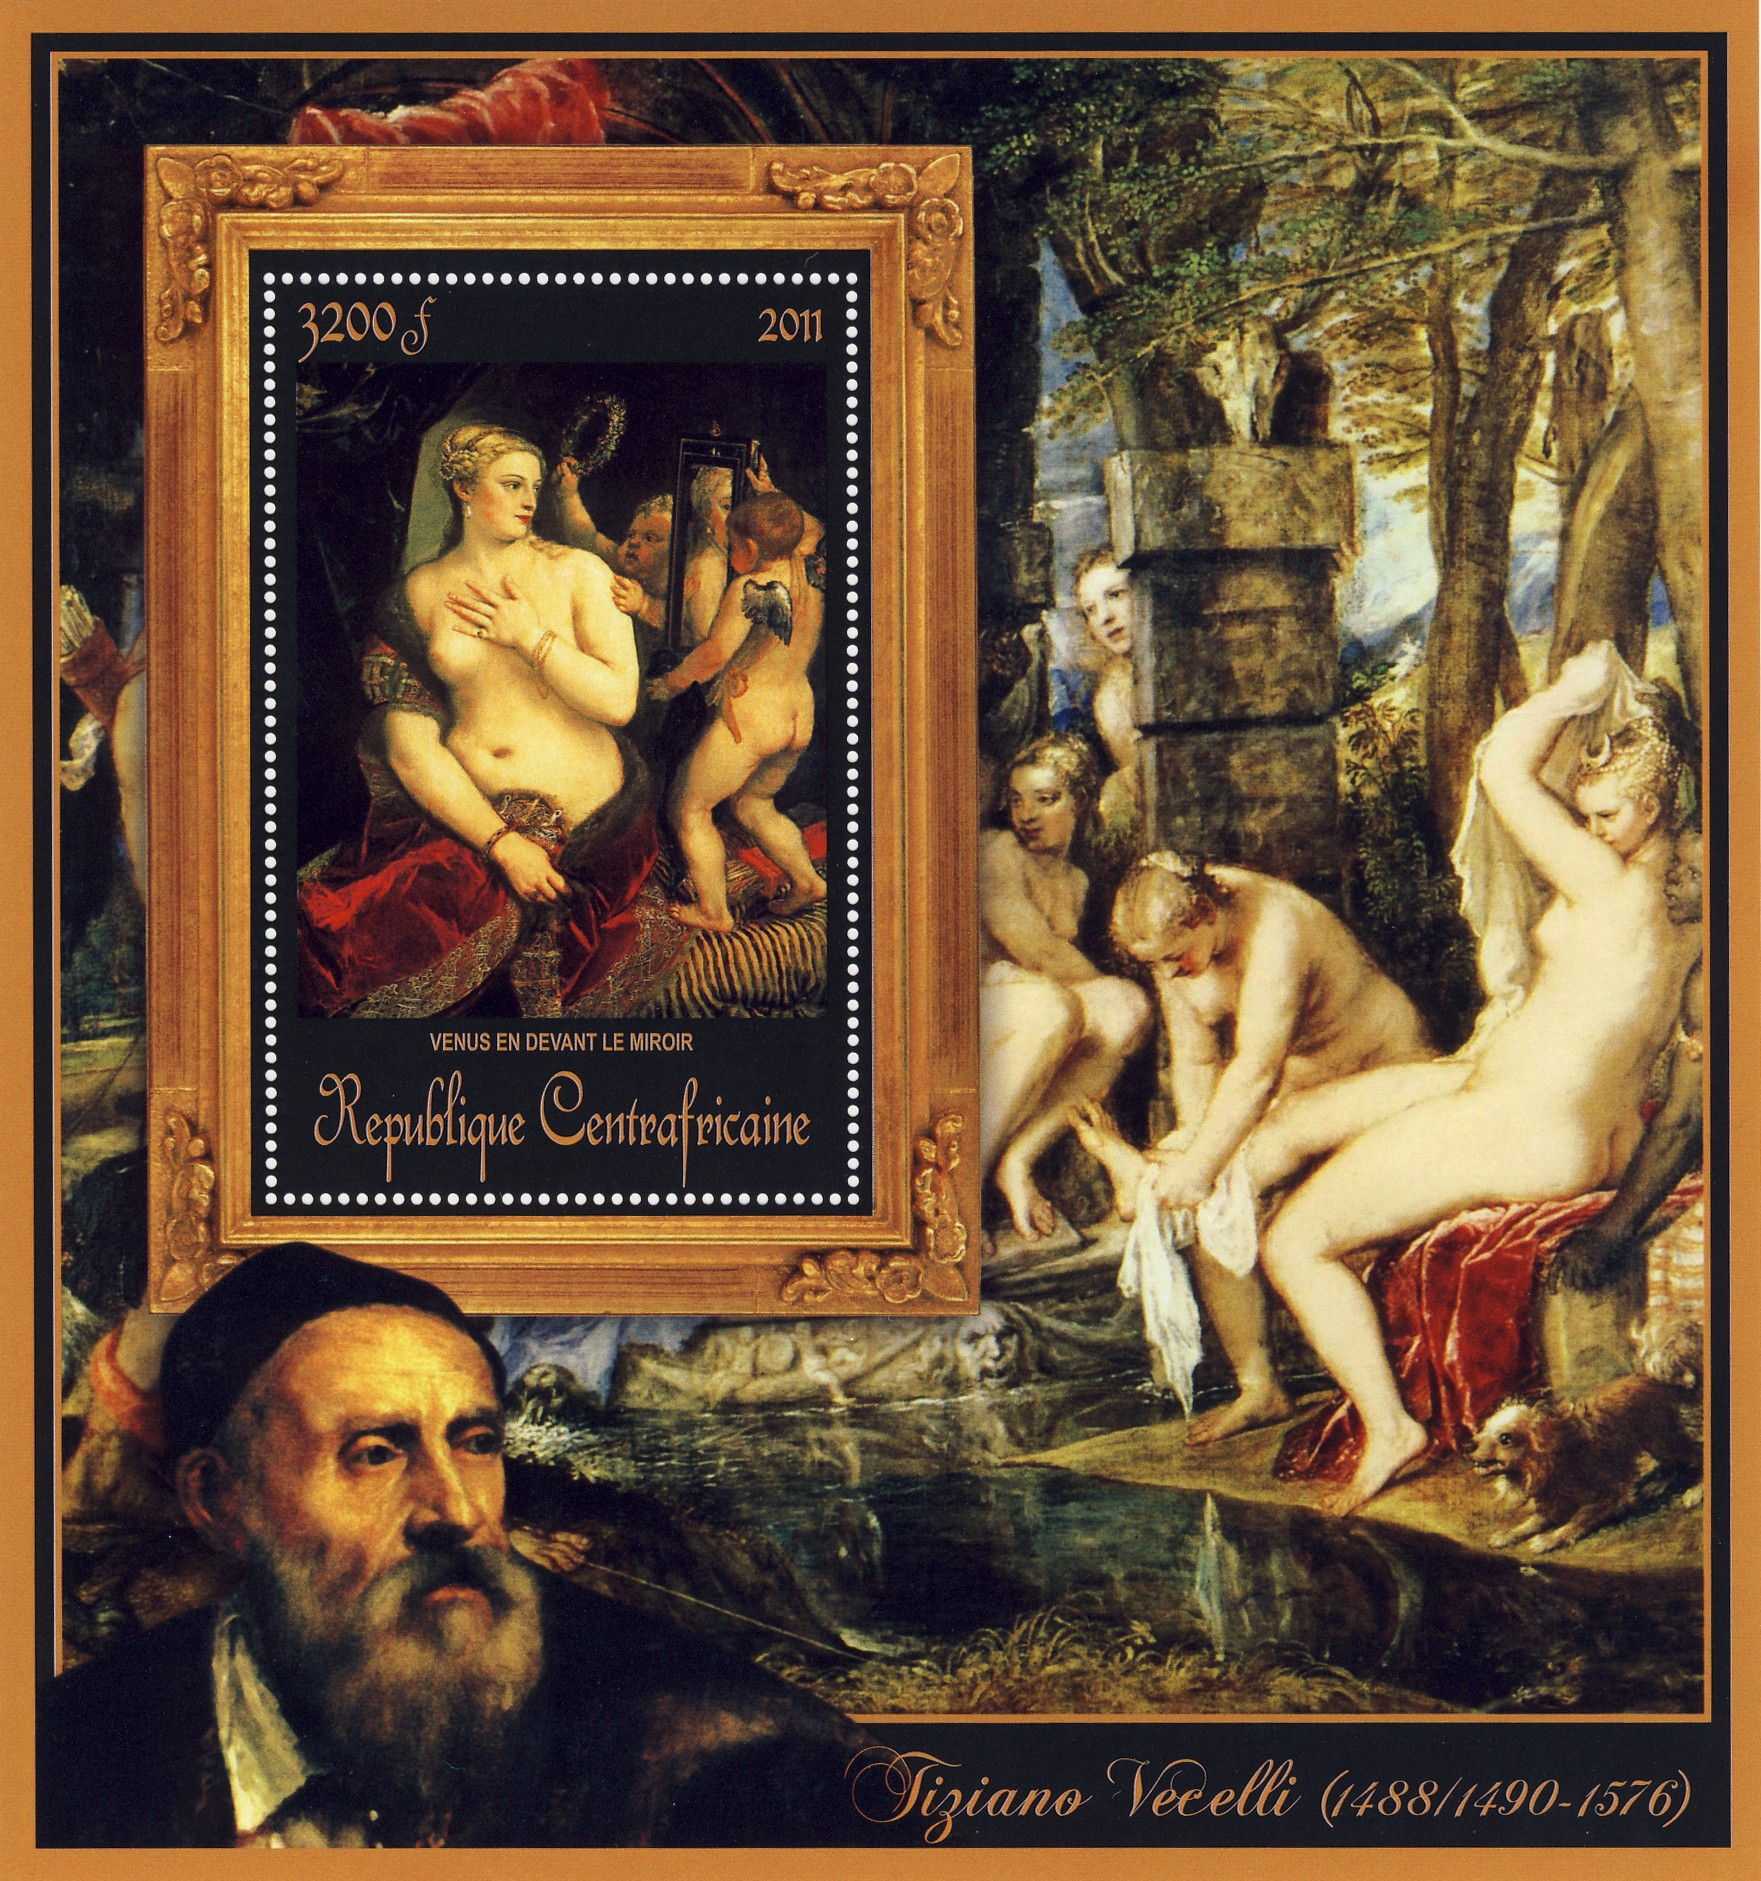 Special Block of Paintings of Tiziano Vecelli,  (Venus en devant le miroir). - Issue of Central African republic postage stamps